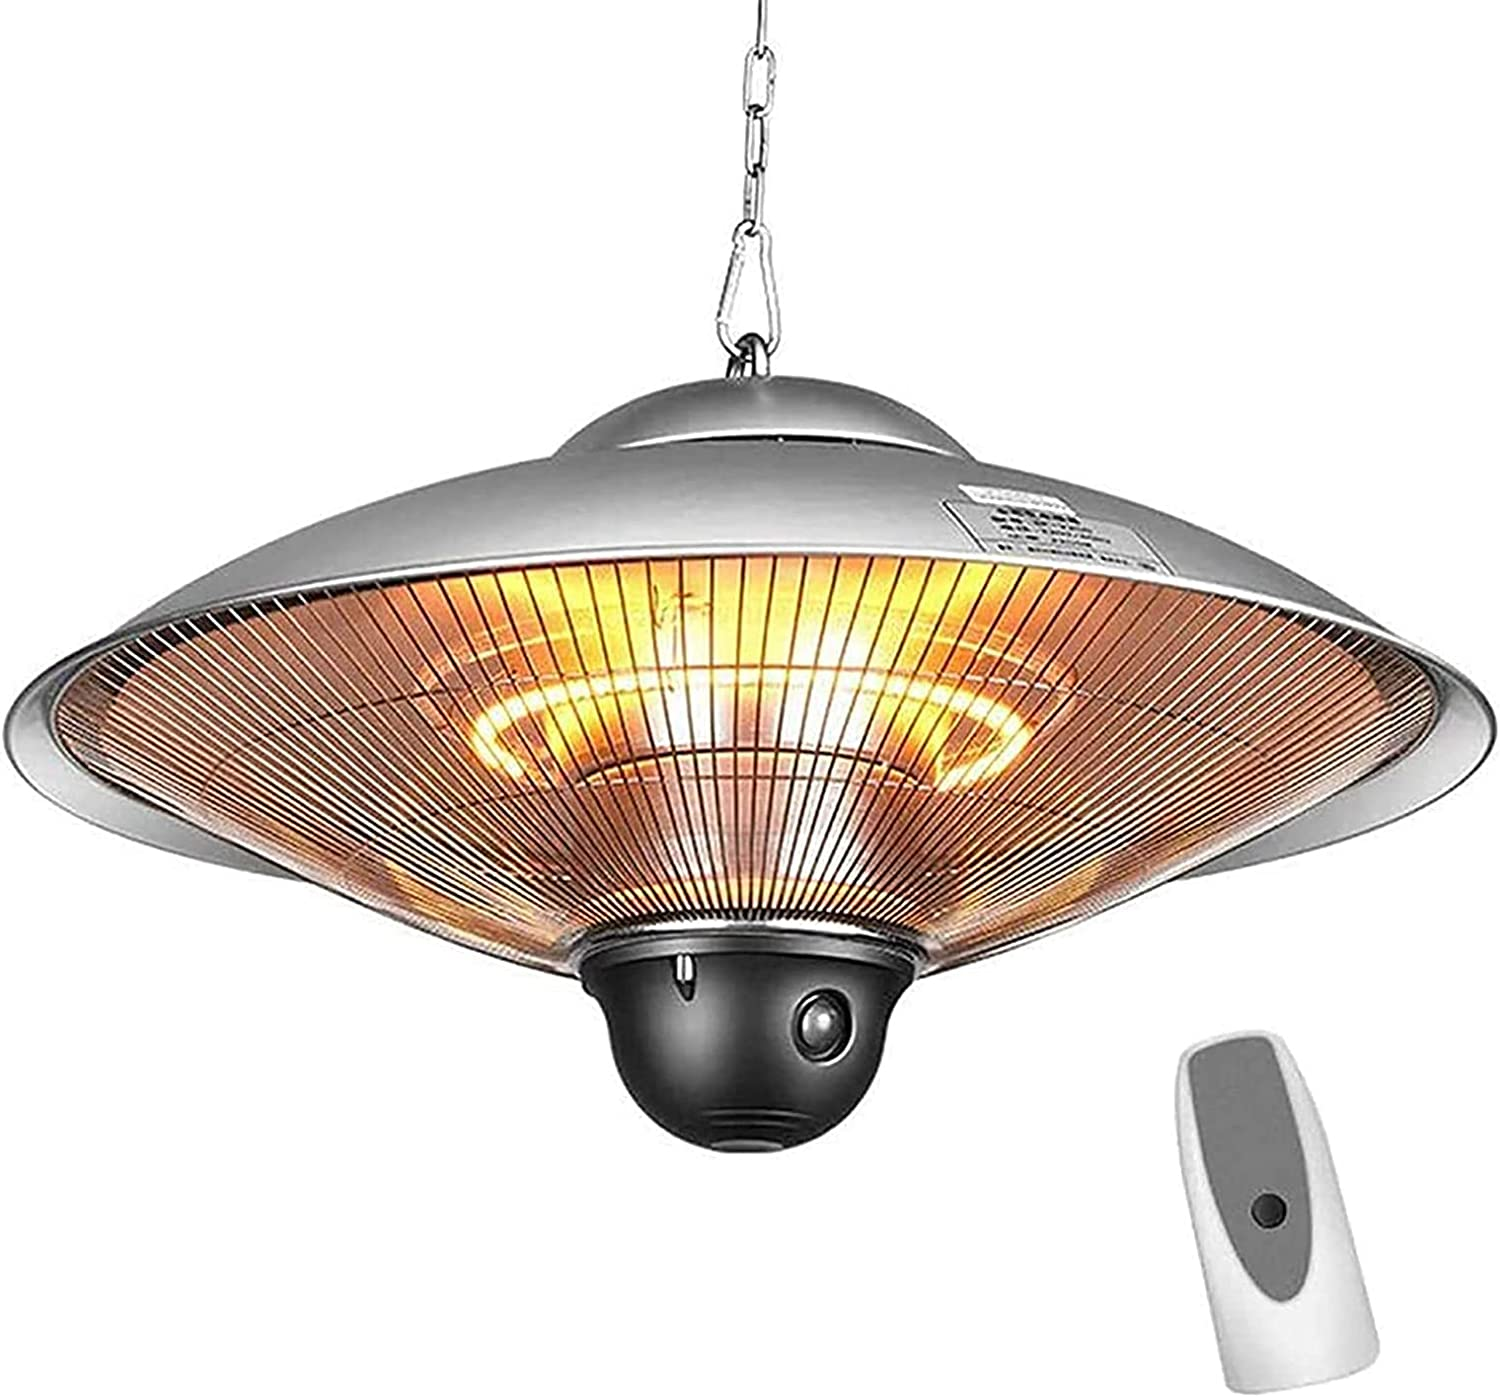 MTTLS 2200W Hanging Heater Outdoor Max 85% OFF Patio Ranking TOP15 Steel Stainless